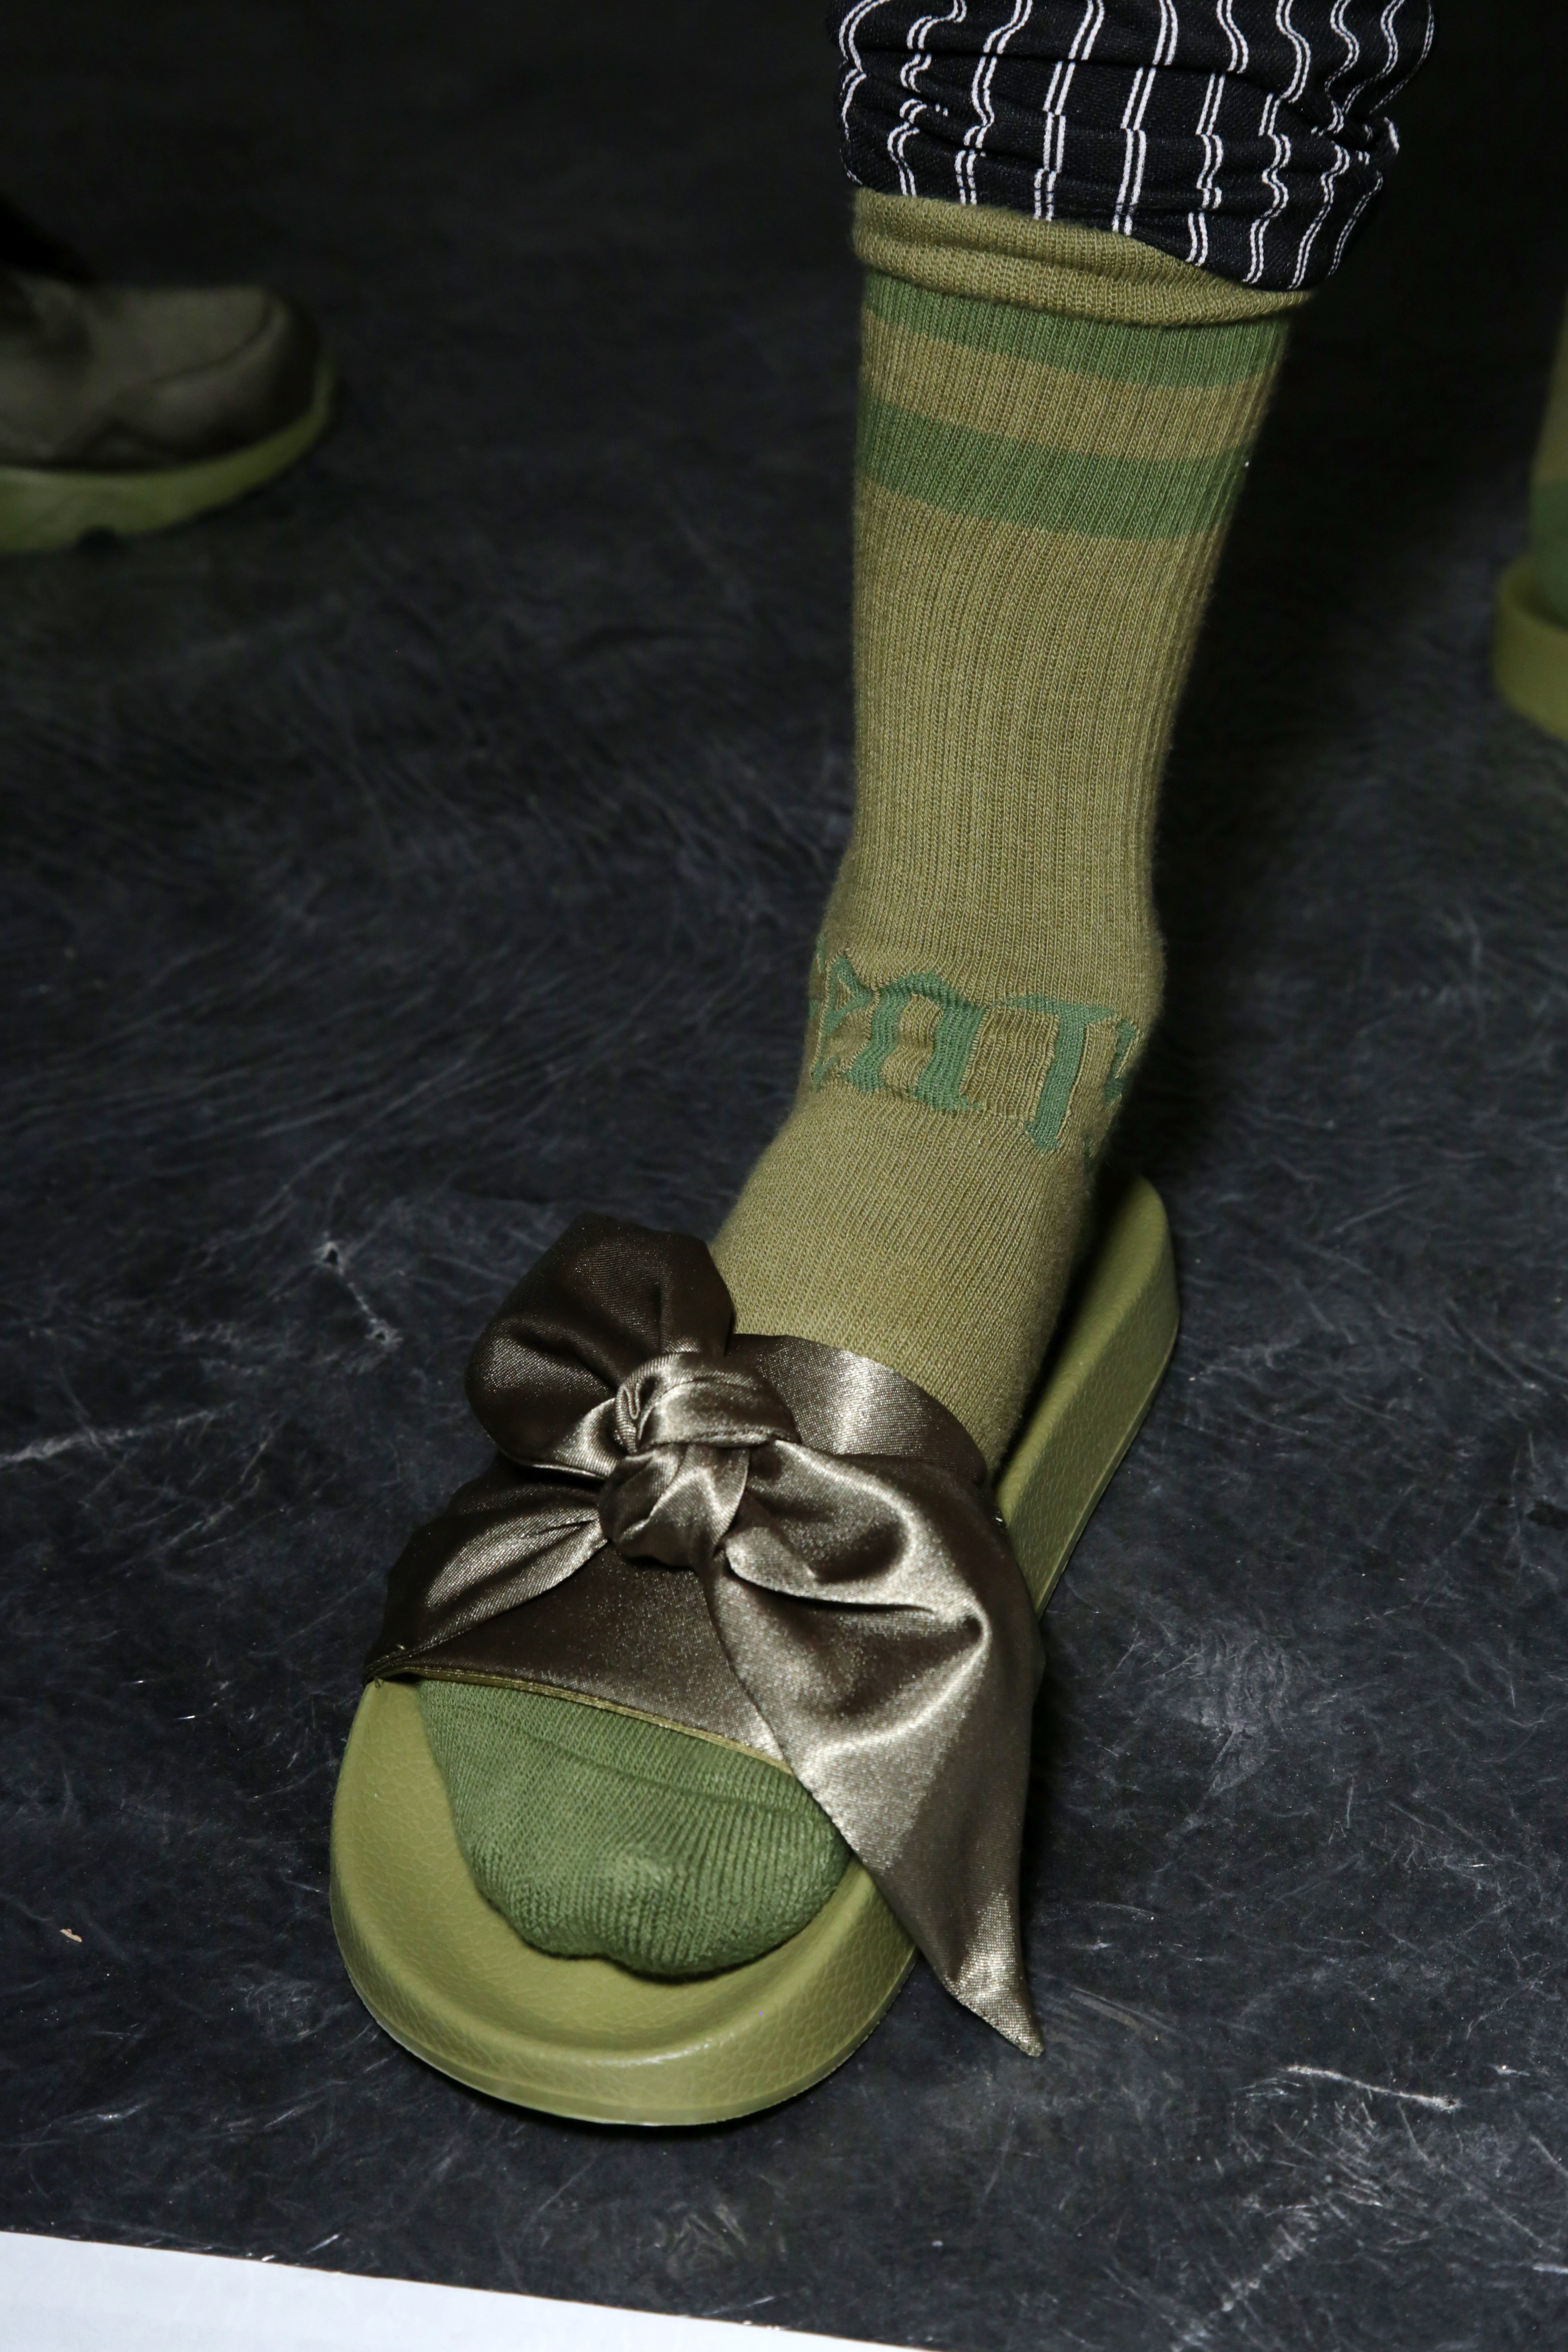 PARIS, FRANCE - SEPTEMBER 28: A model, shoe detail, is seen backstage during FENTY x PUMA by Rihanna at Hotel Salomon de Rothschild on September 28, 2016 in Paris, France. (Photo by Victor Boyko/Getty Images for Fenty x Puma)